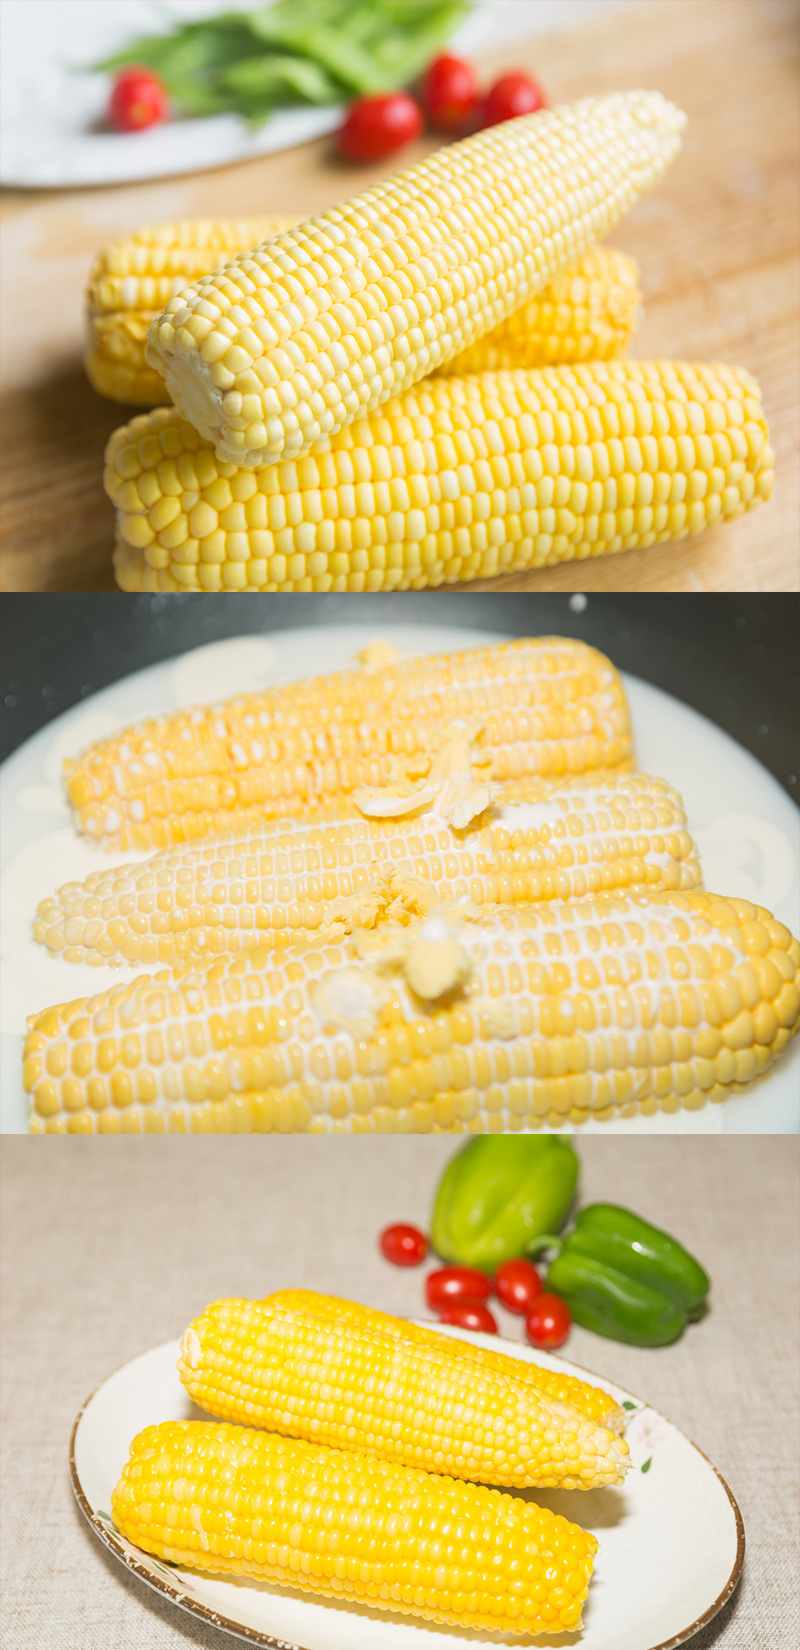 cook corn in milk and butter